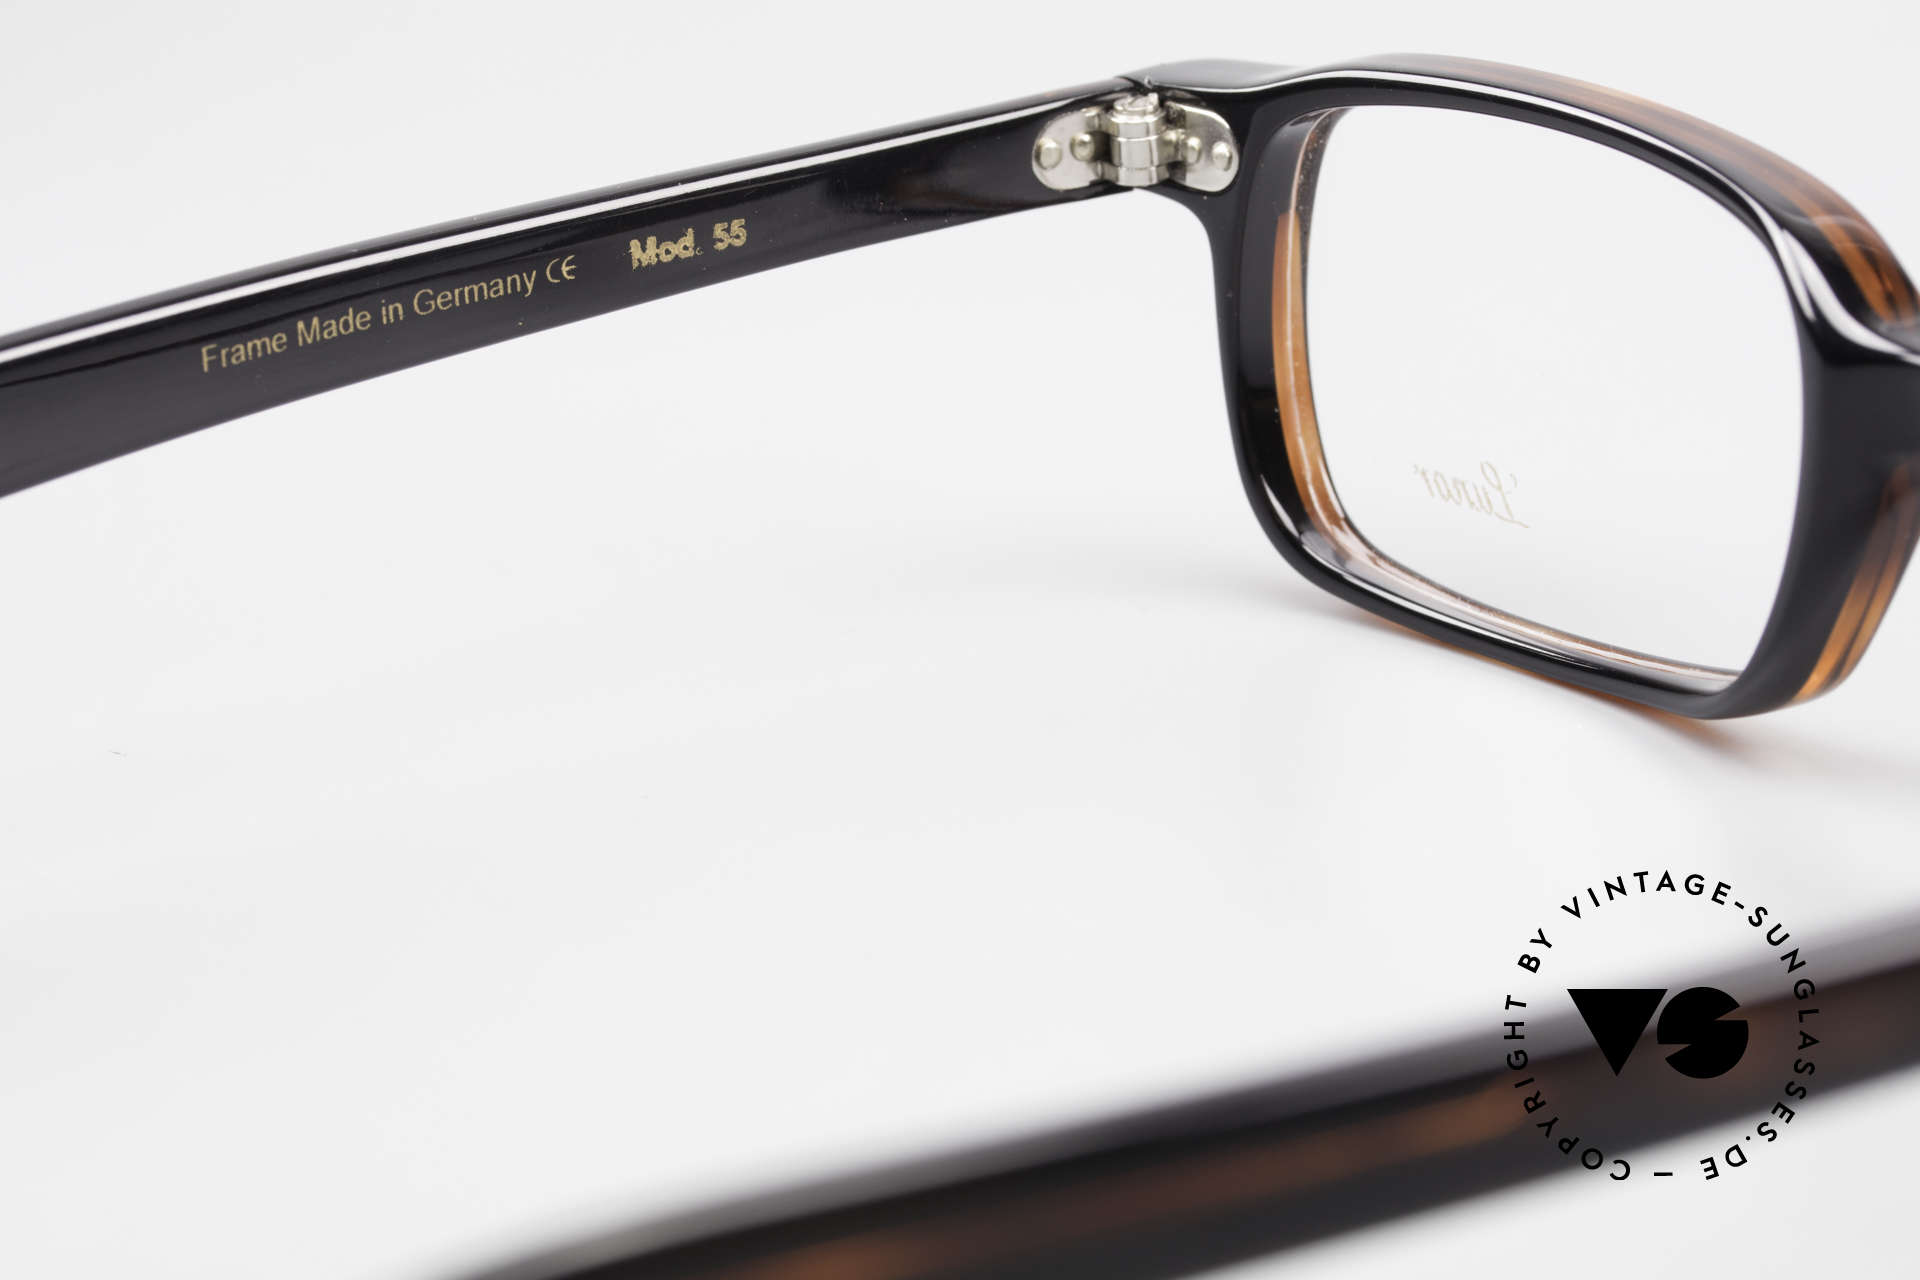 Lunor A55 Square Lunor Glasses Acetate, the demo lenses can be replaced with optical (sun) lenses, Made for Men and Women